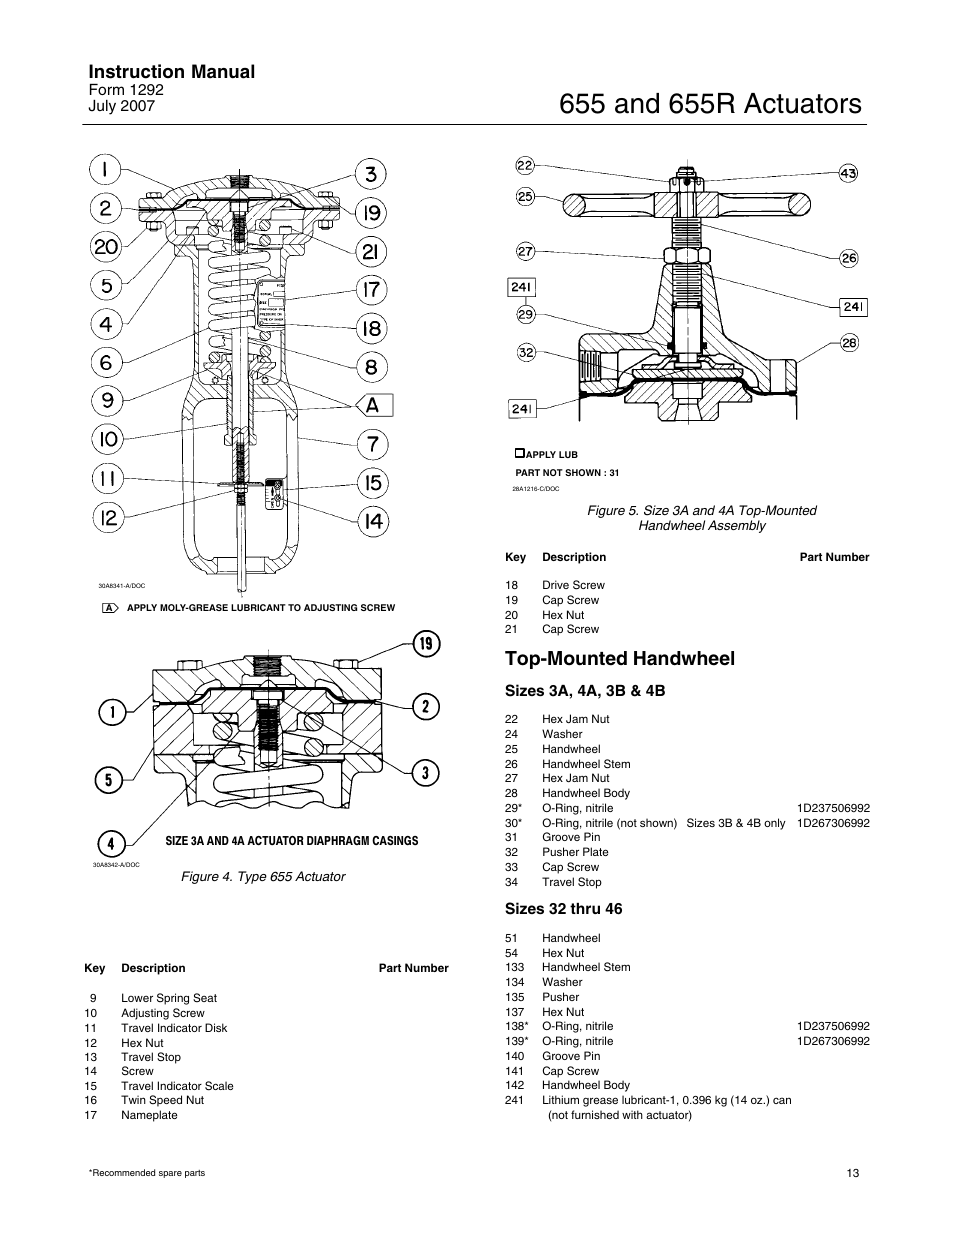 Top-mounted handwheel, Instruction manual, Sizes 3a, 4a